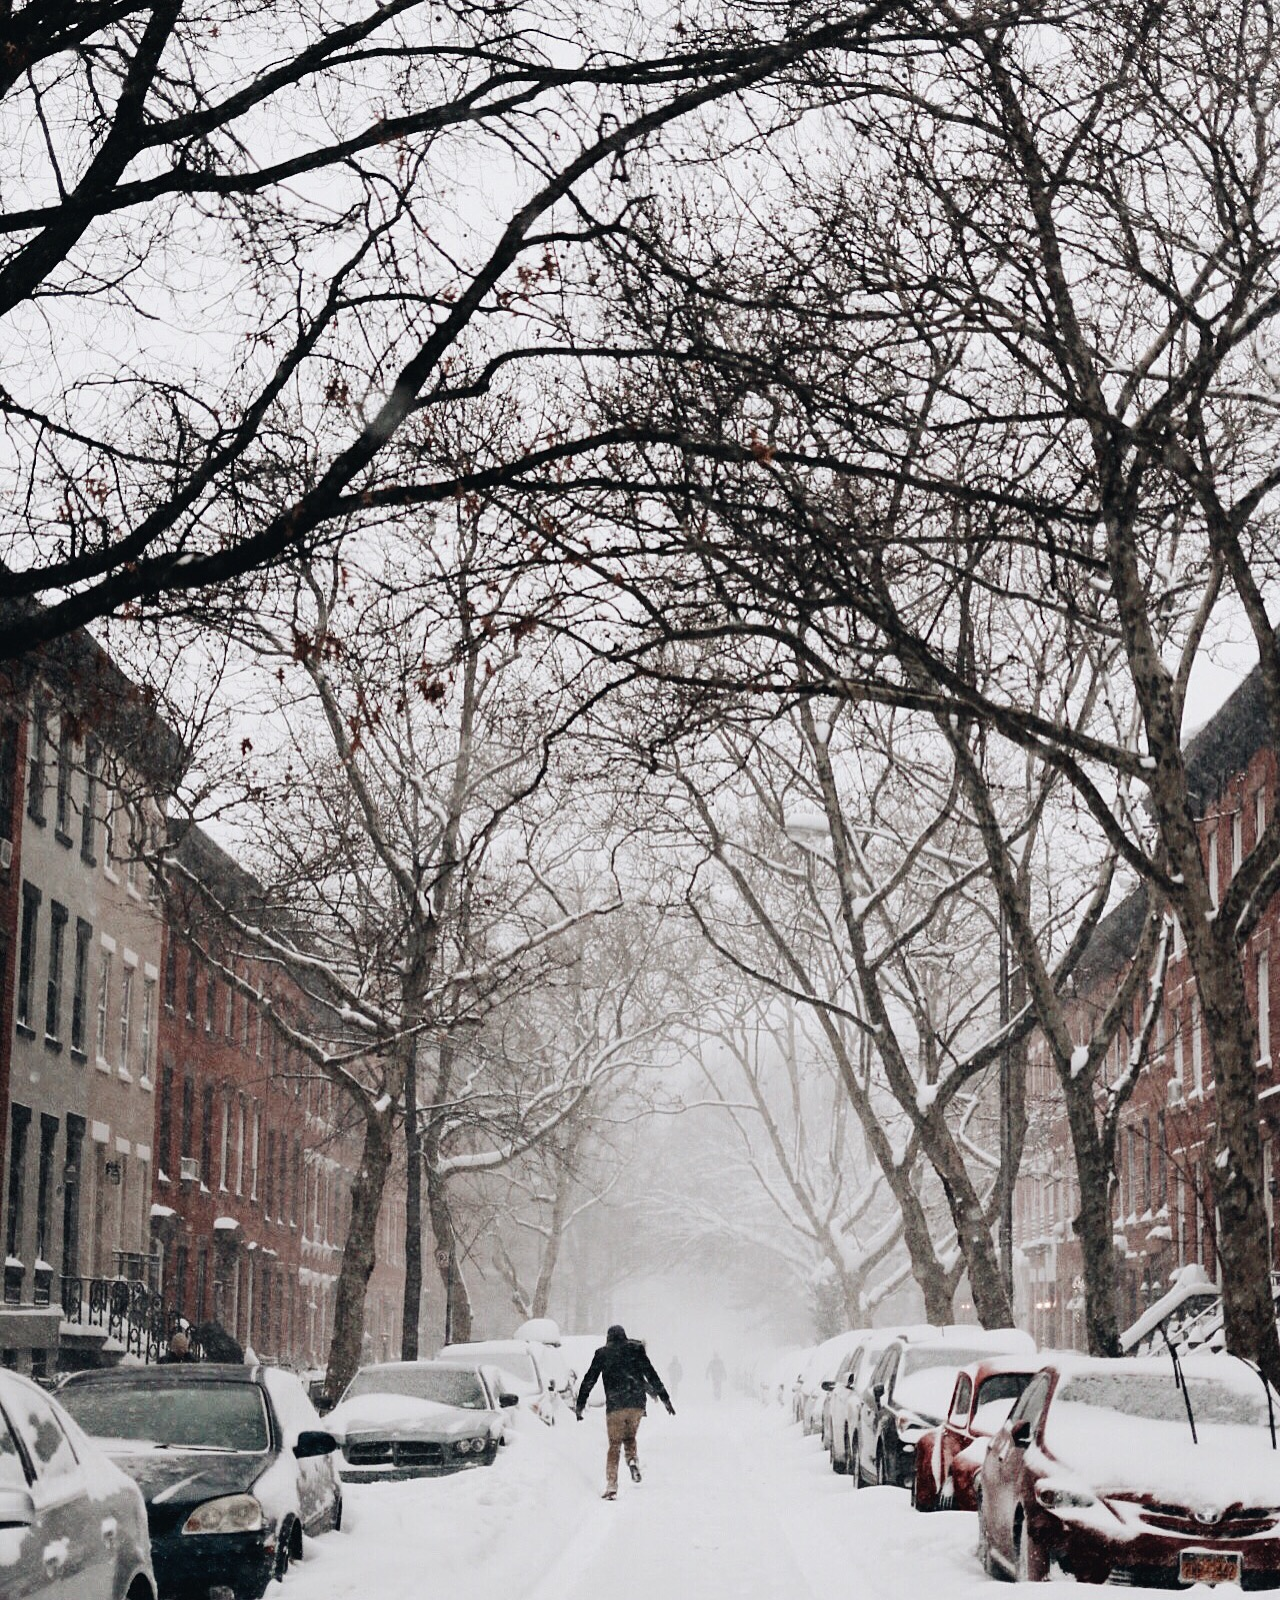 Luquer Street, Brooklyn. About 2:00pm 01.23.16